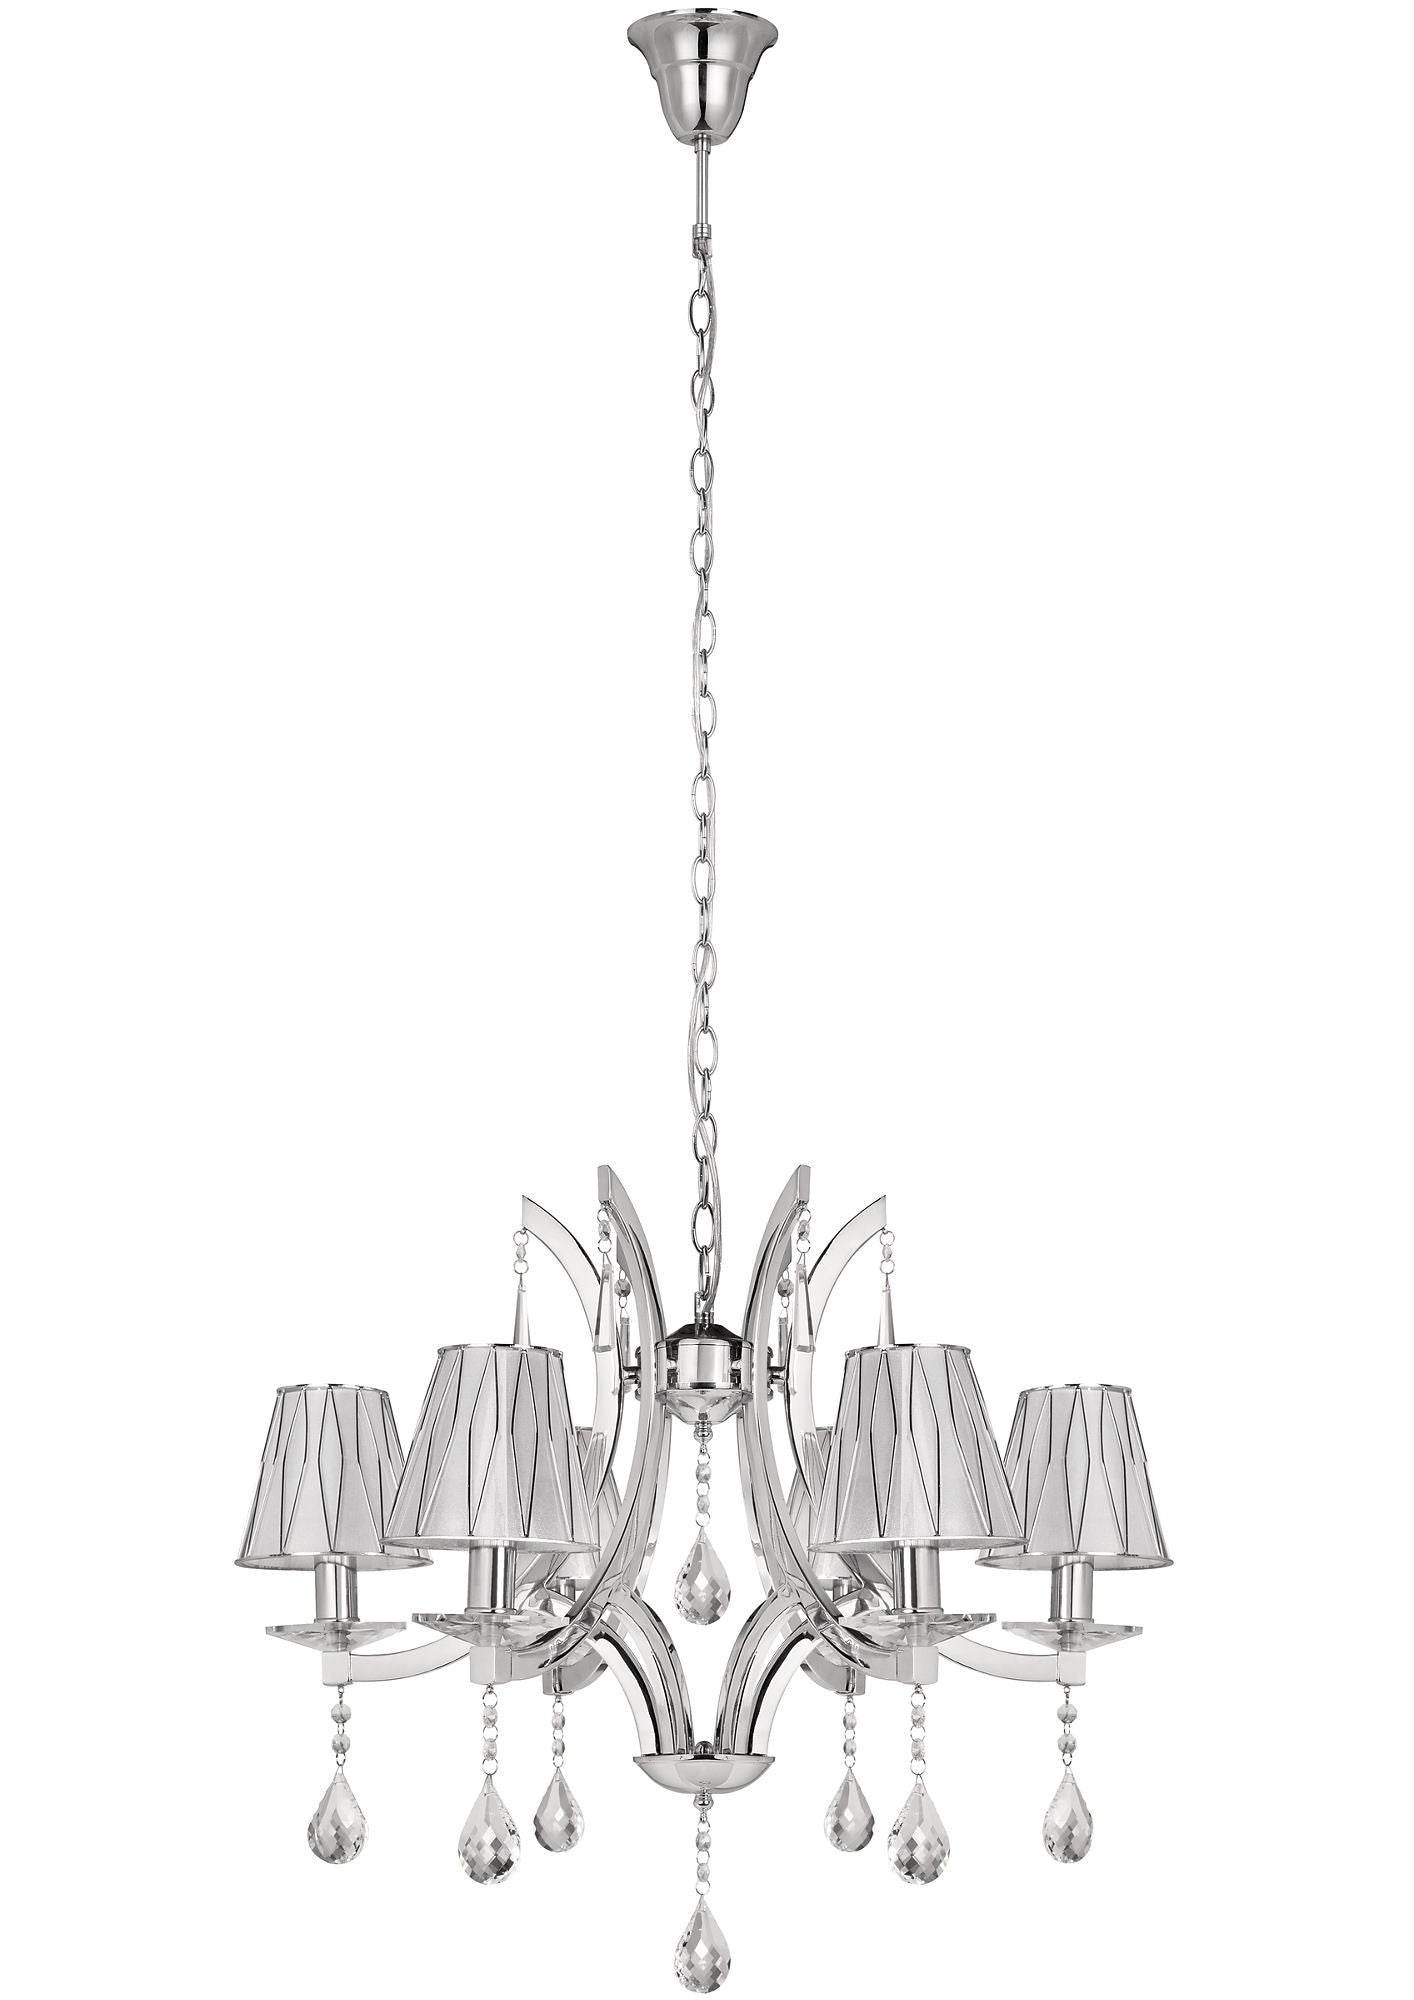 Philips myLiving Crystal Chandelier Suspension Light/Adjustable Height